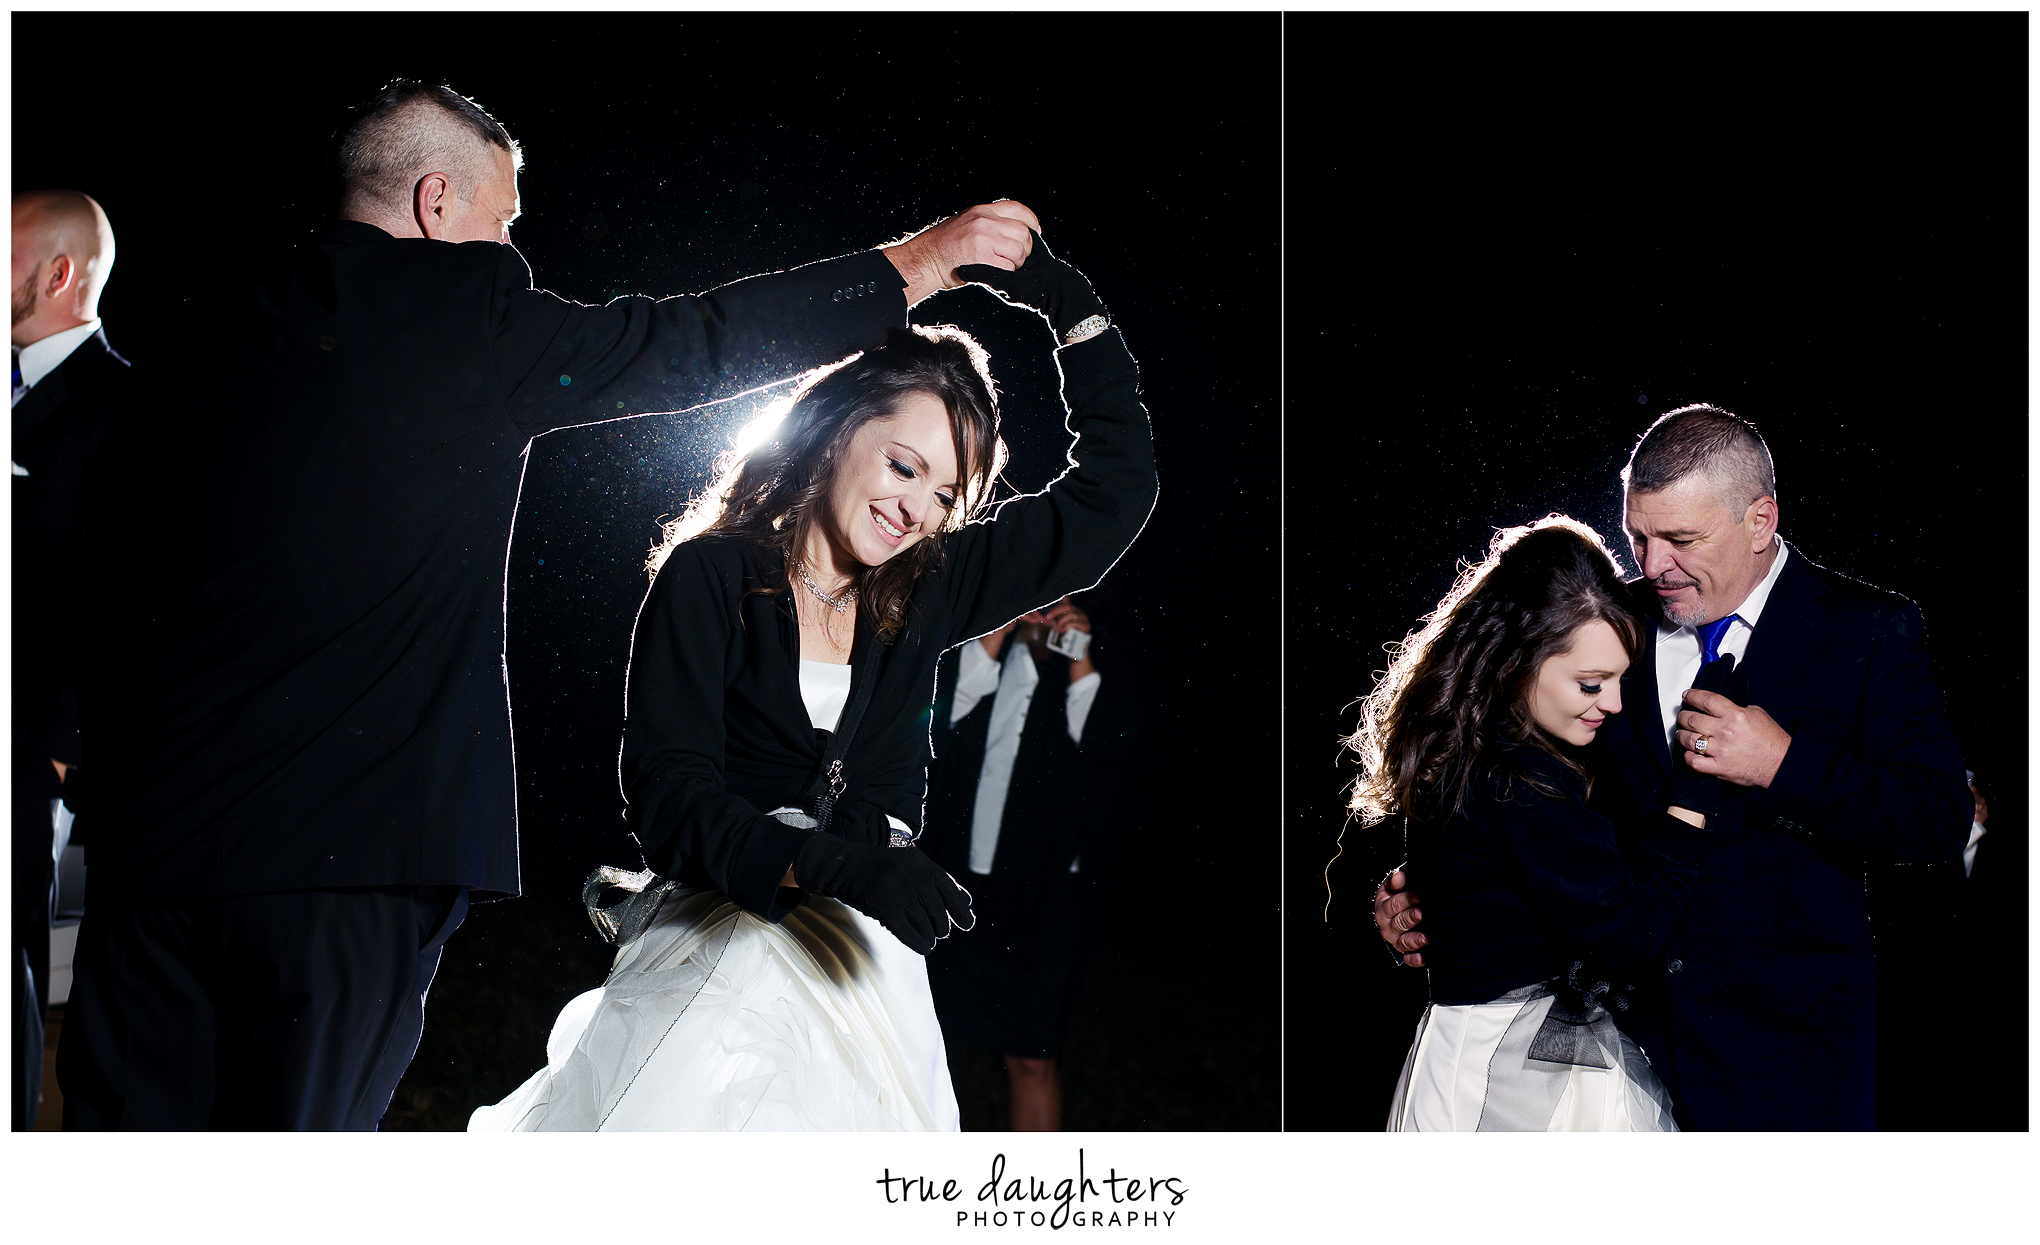 True_Daughters_Photography_Campitelli_Wedding-37.png